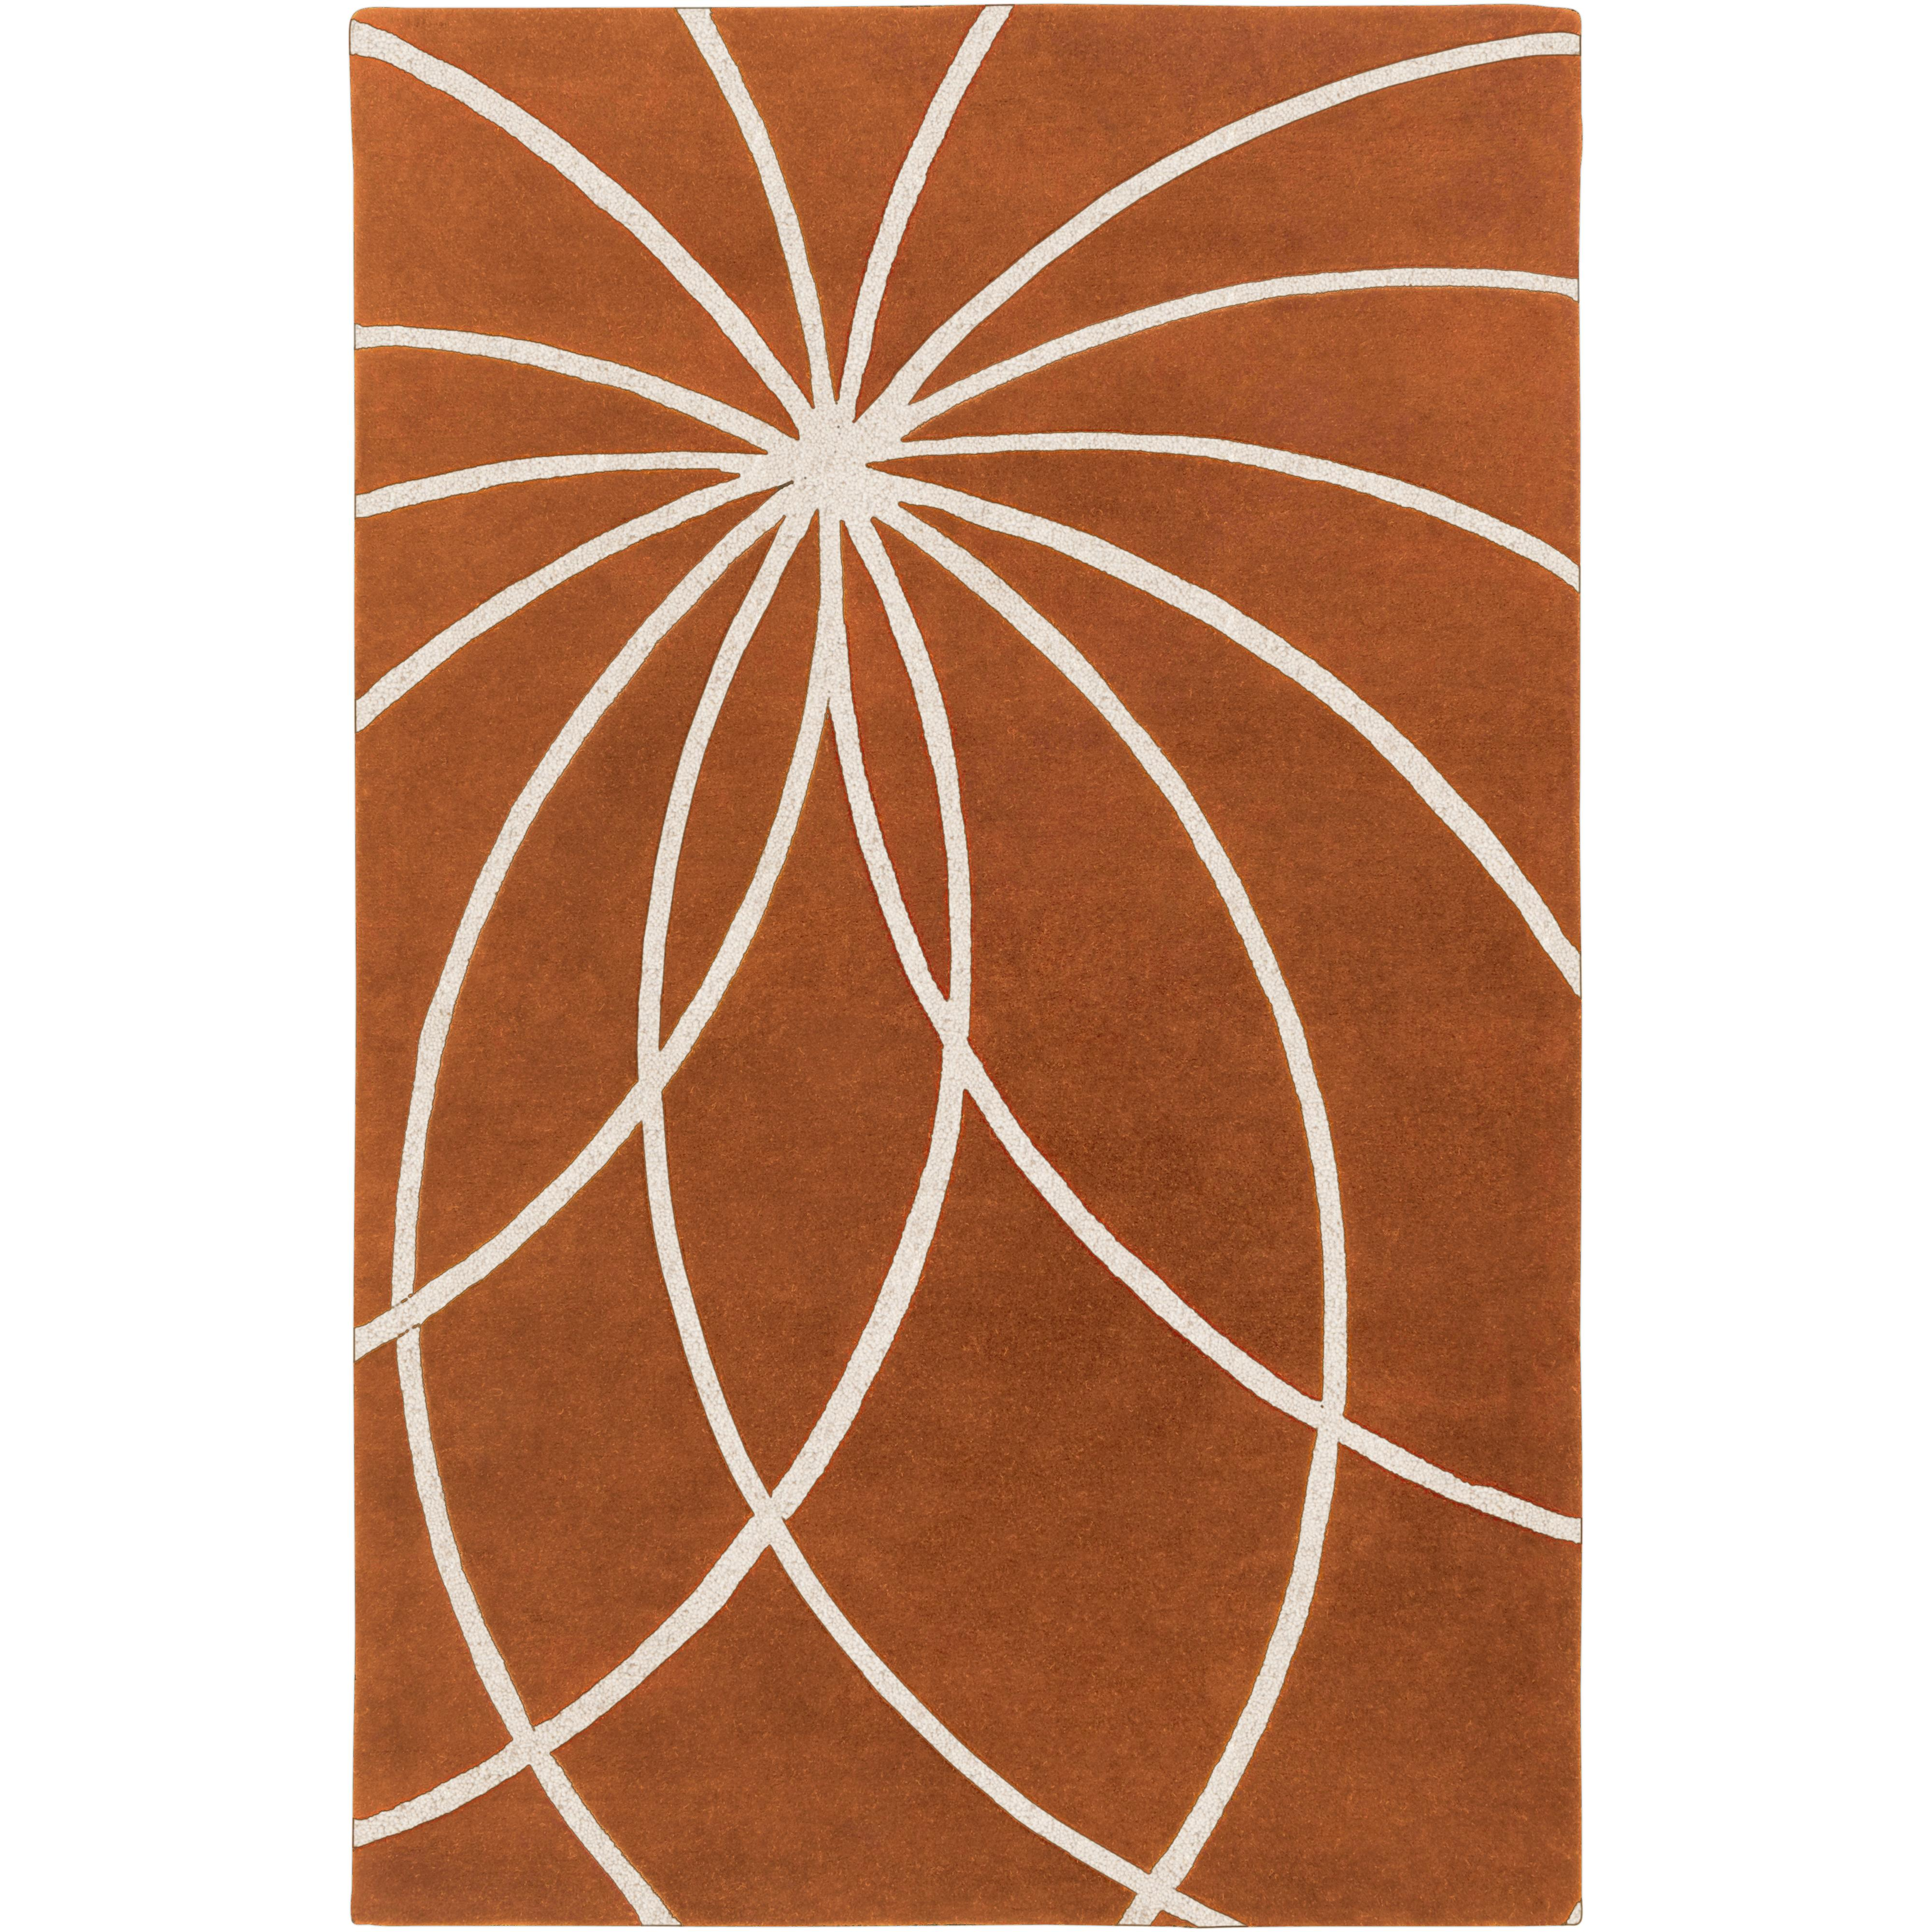 "Surya Rugs Forum 7'6"" x 9'6"" - Item Number: FM7175-7696"